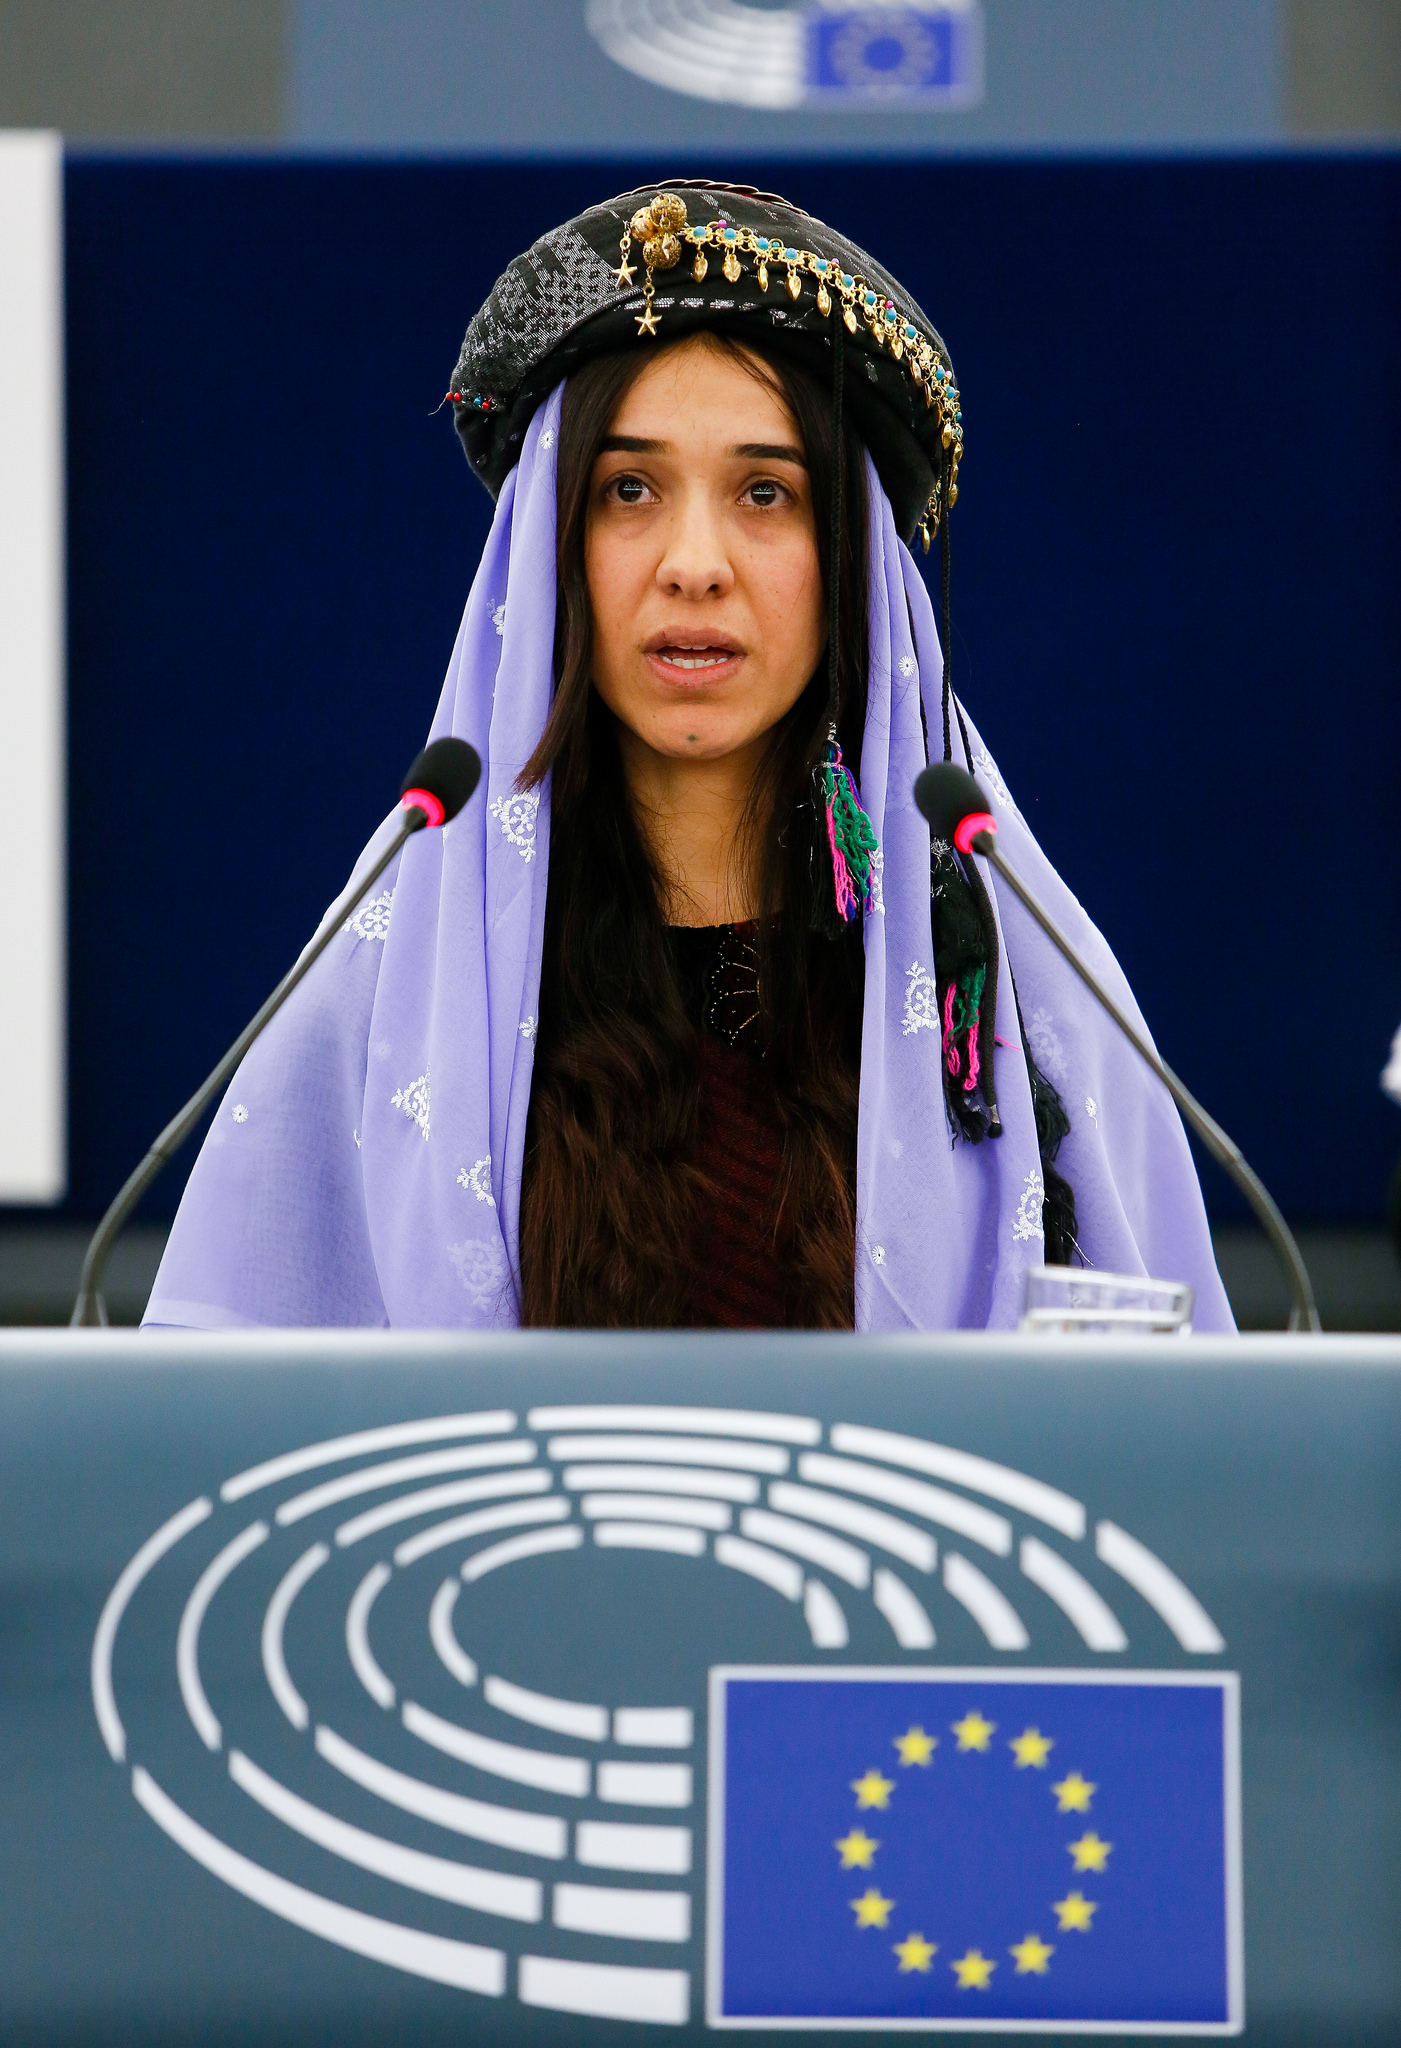 Nadia murad, book pdf, story, nobel prize, speech, Age, Family, Biography